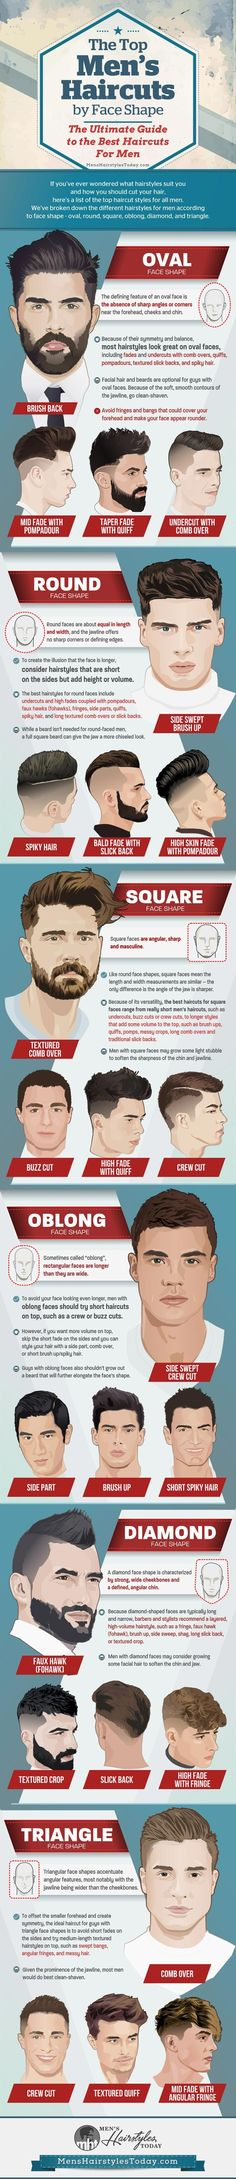 Men's #hairstyles by face shape